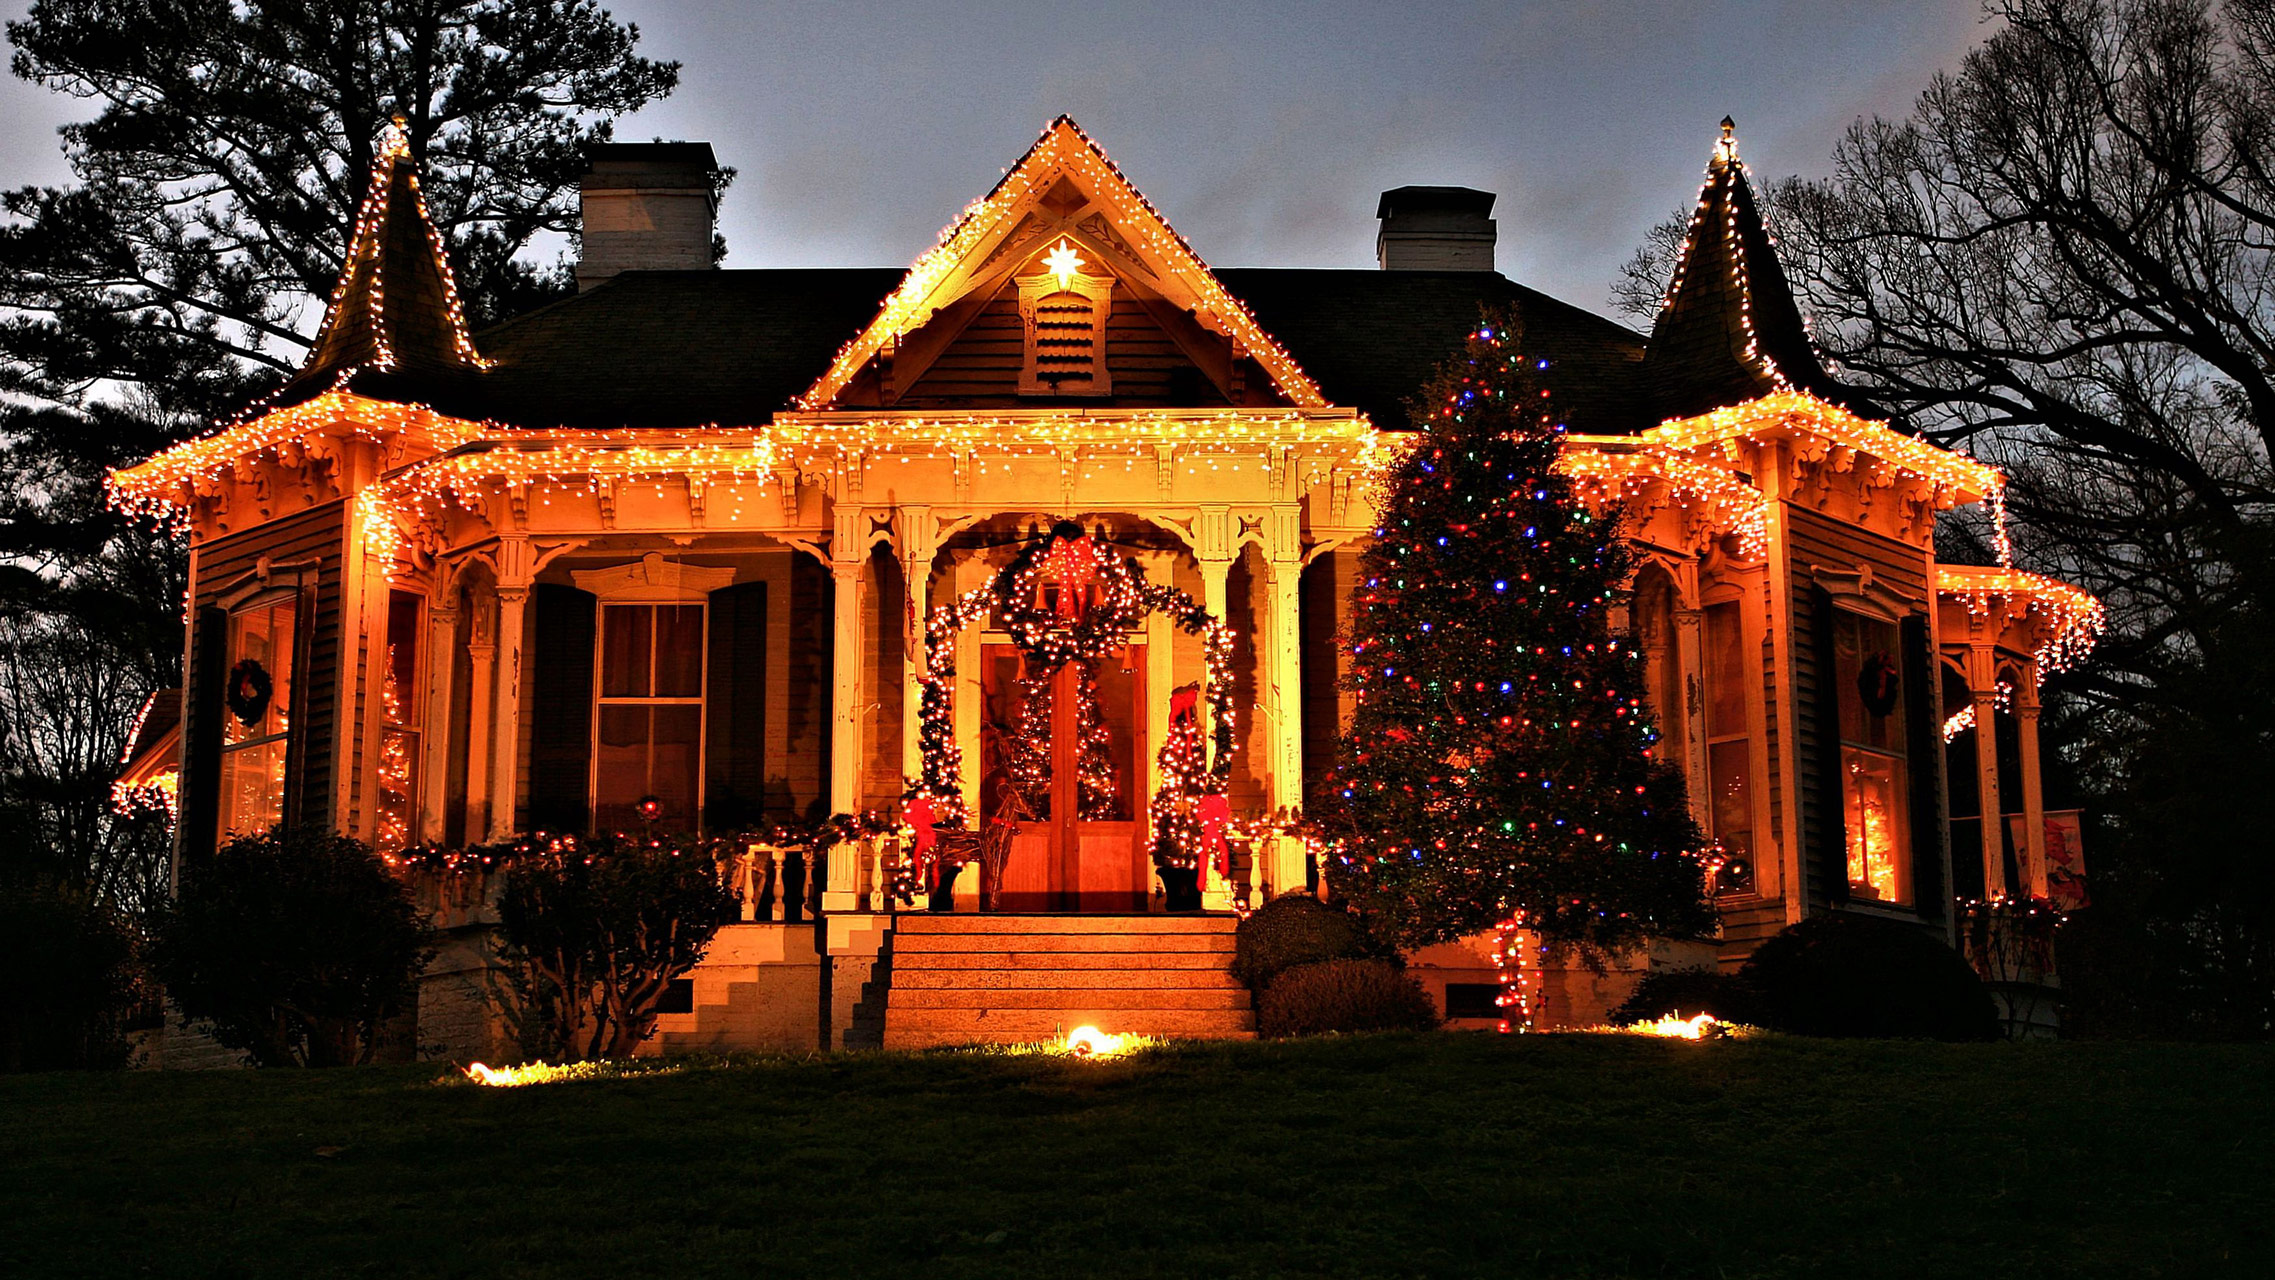 home decorated in Christmas lights night shot